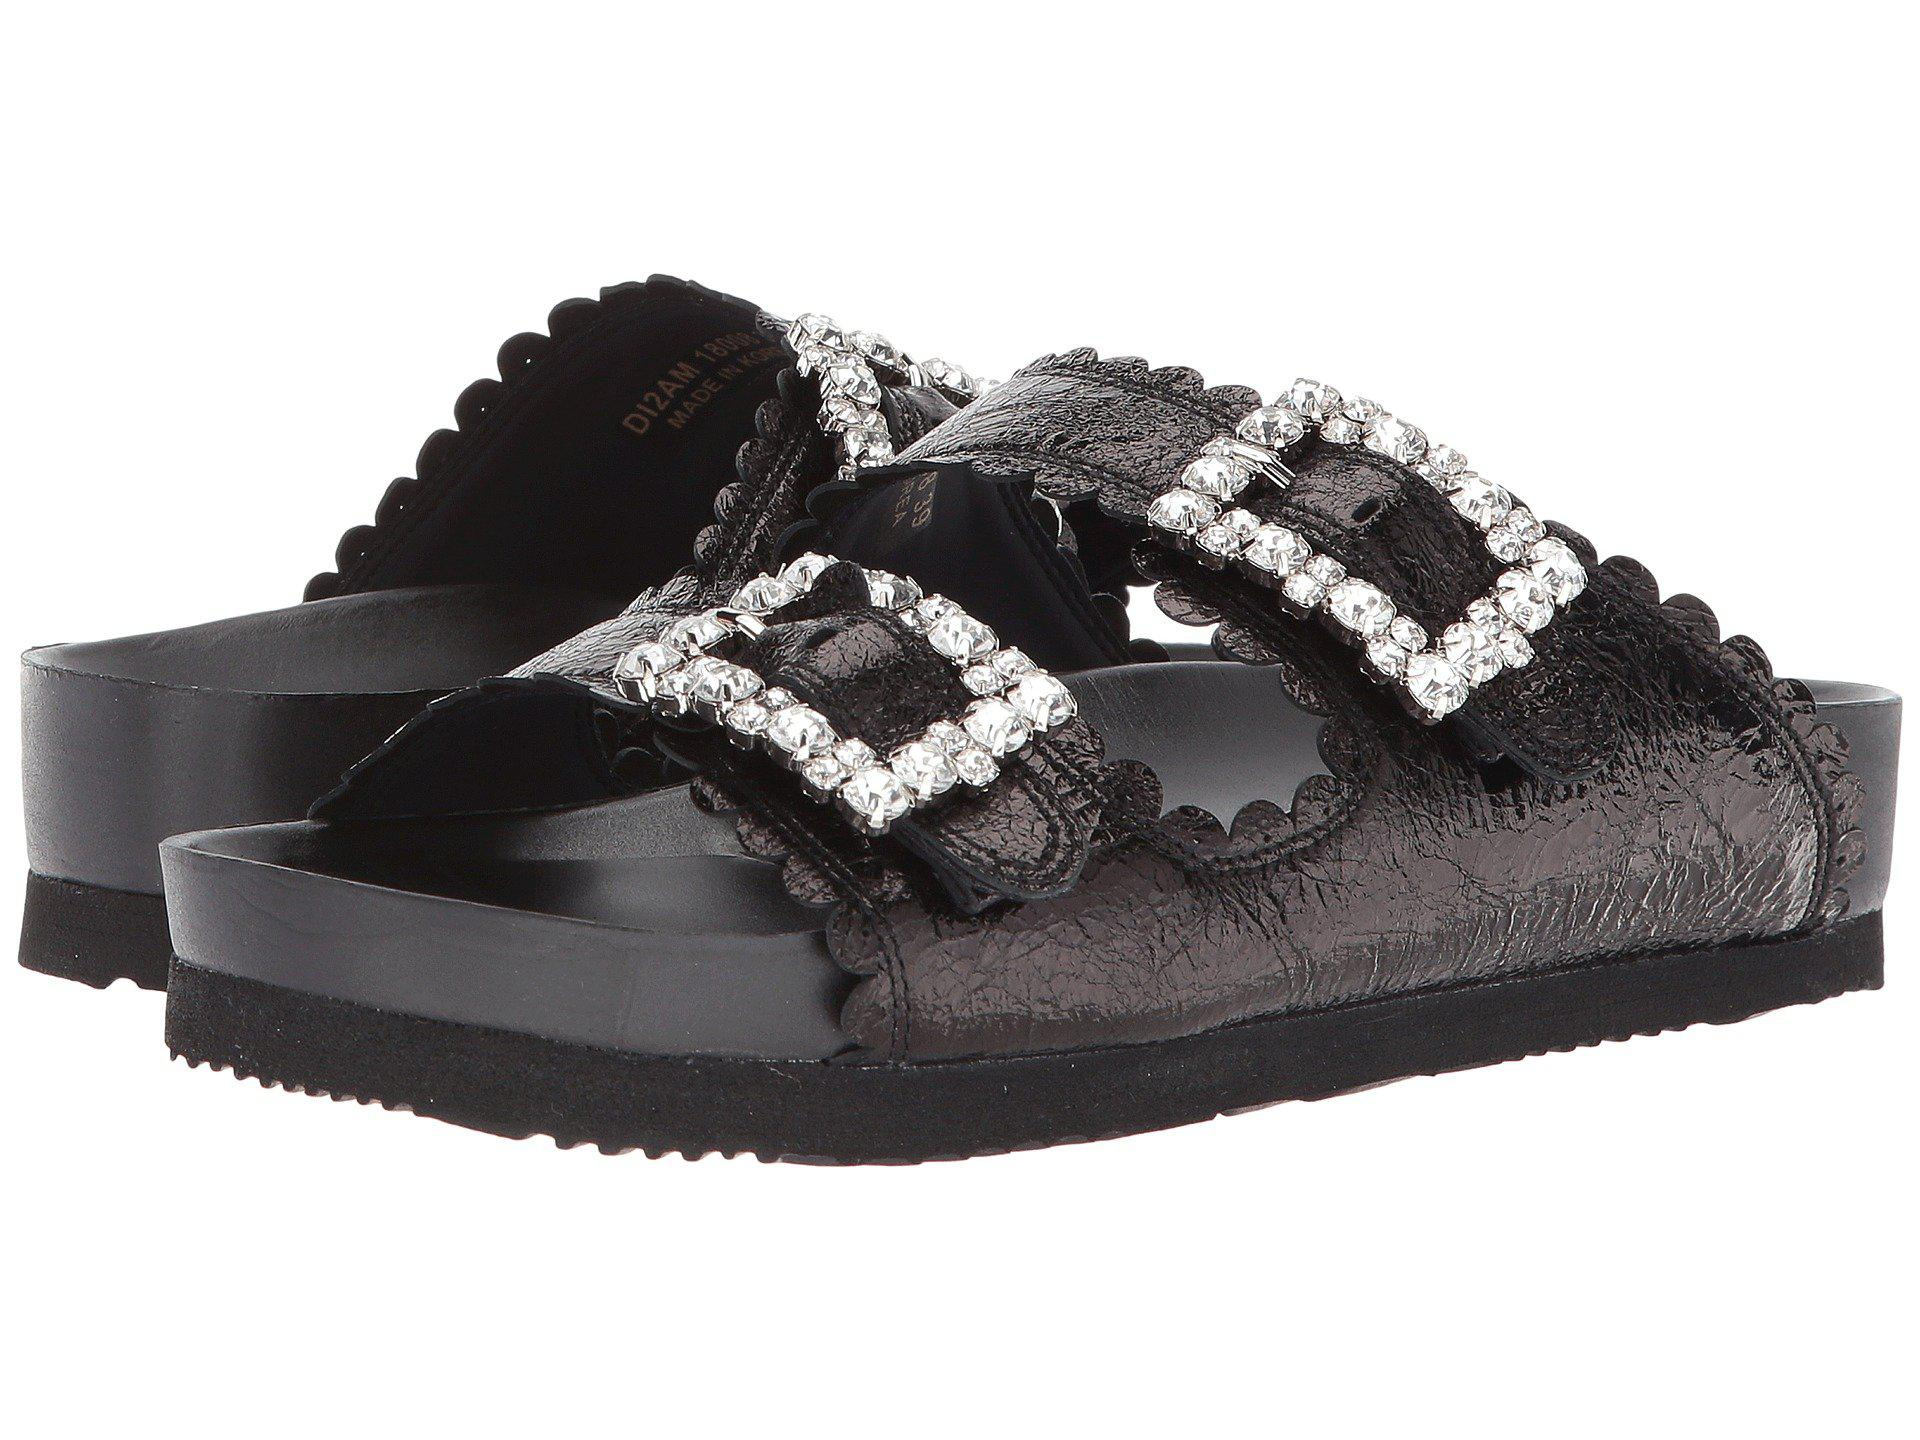 SUECOMMA BONNIE Jewel buckle sandals FSk5pn0b